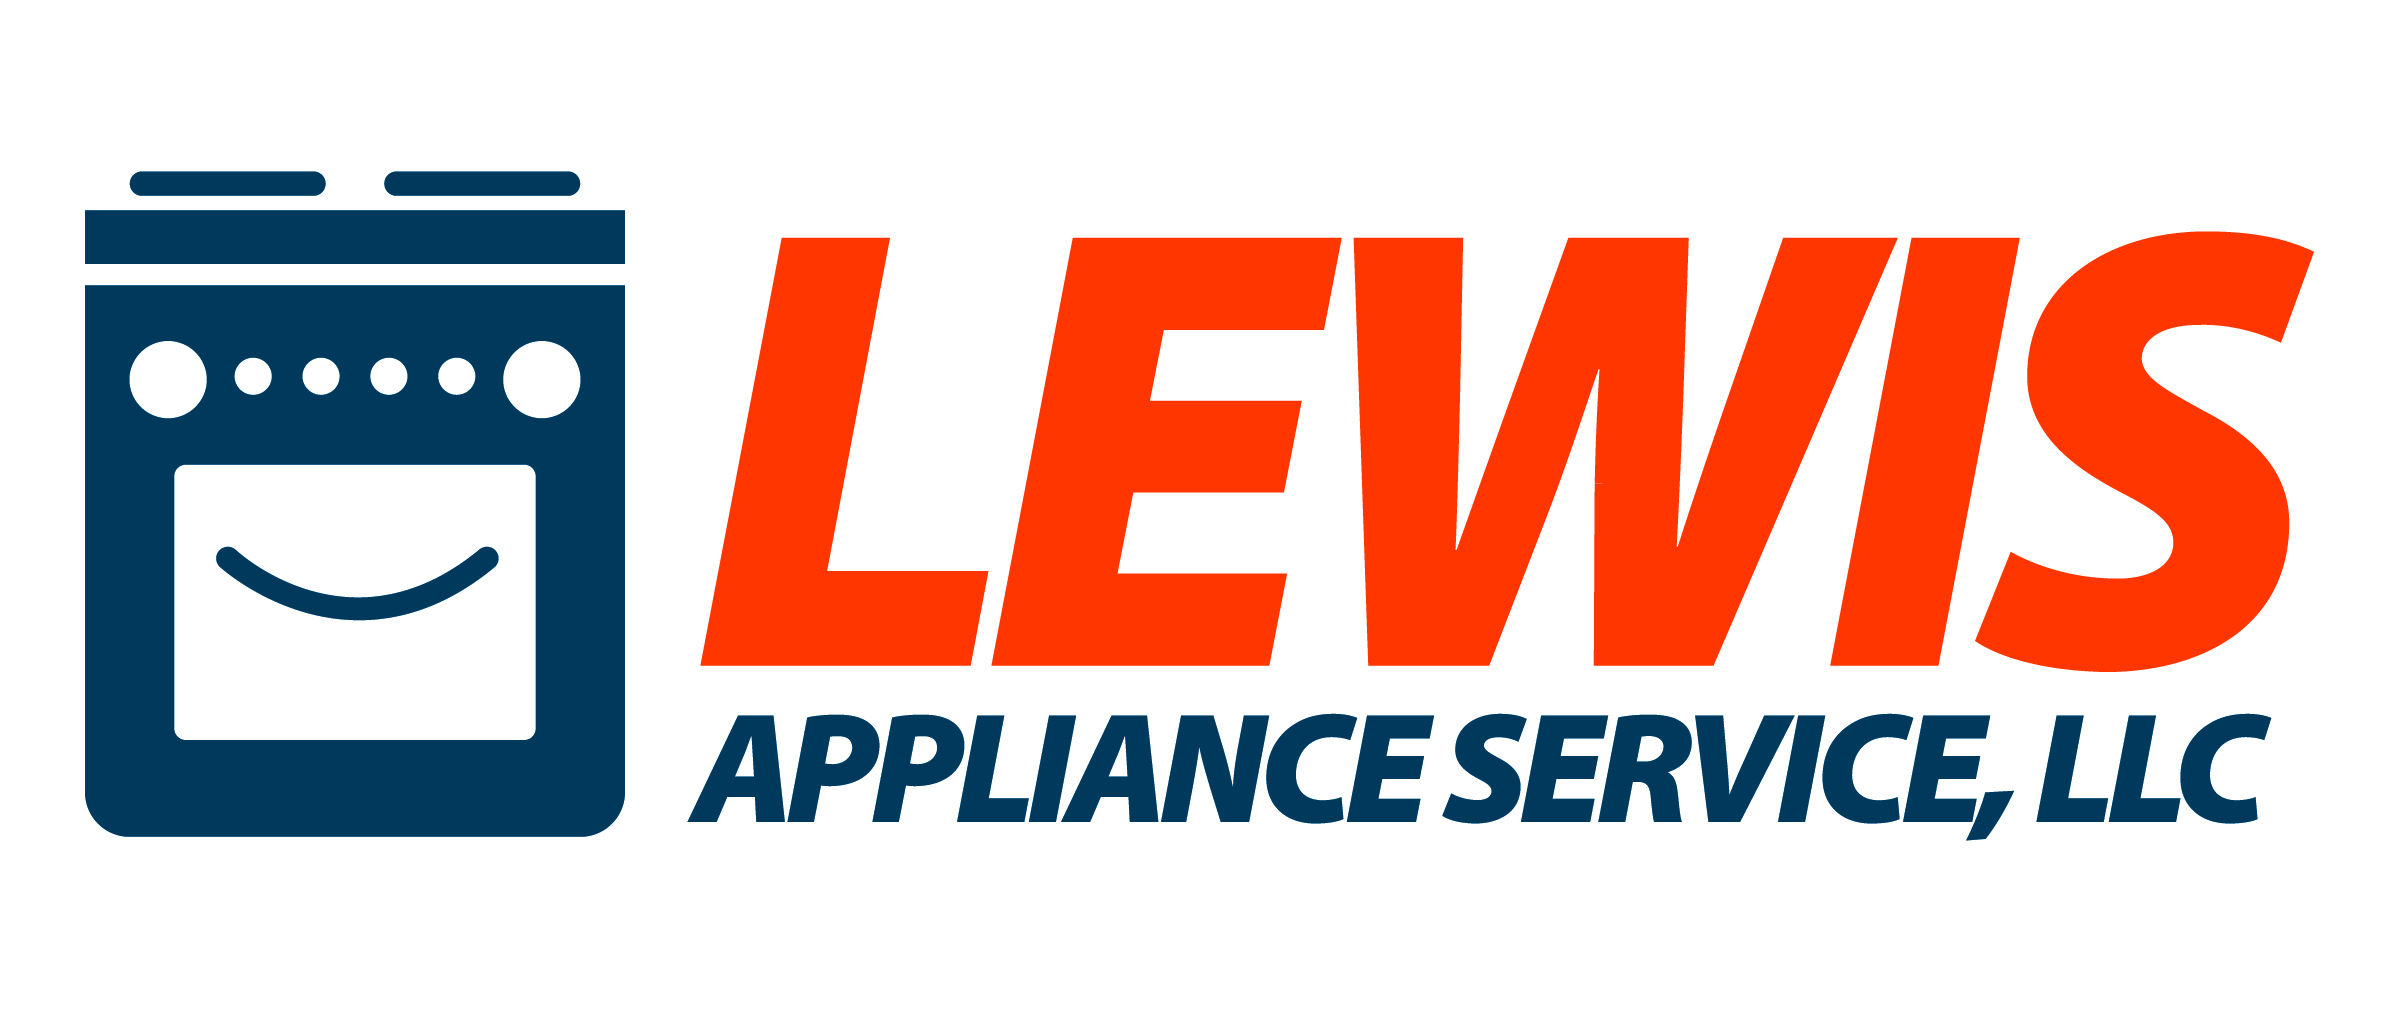 Appliance Repair in  Warren, PA, Jamestown, NY, Lakewood, NY, Ashville, NY, Bemus Point, NY, Mayville, NY, Fredonia, NY, Dunkirk, NY, Kane, PA, Corry, PA, and everywhere in between.